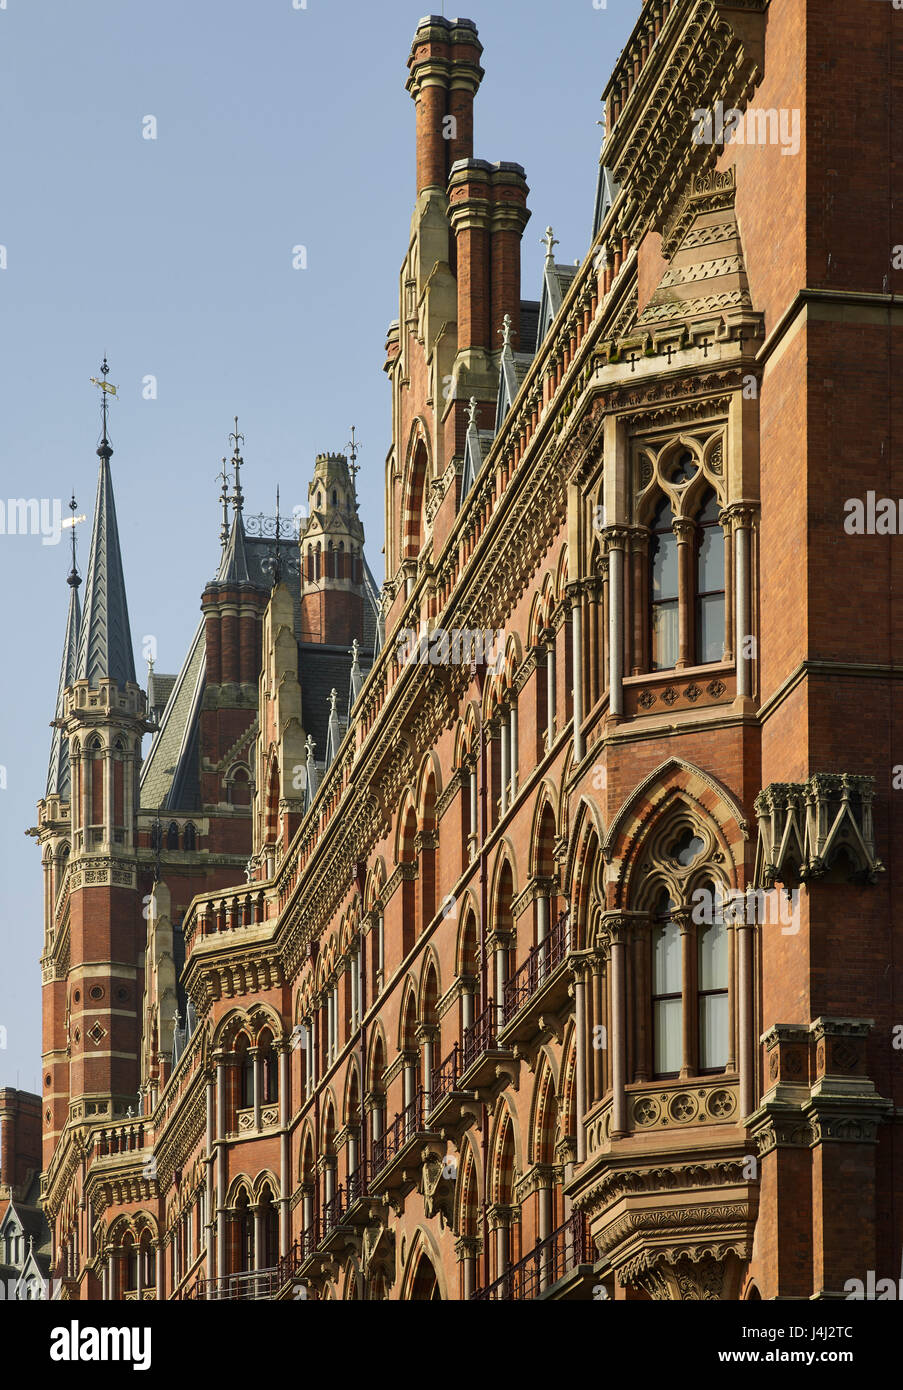 South front of Midland Grand Hotel at St Pancras Station, London. Designed by George Gilbert Scott, in the 1860s, - Stock Image